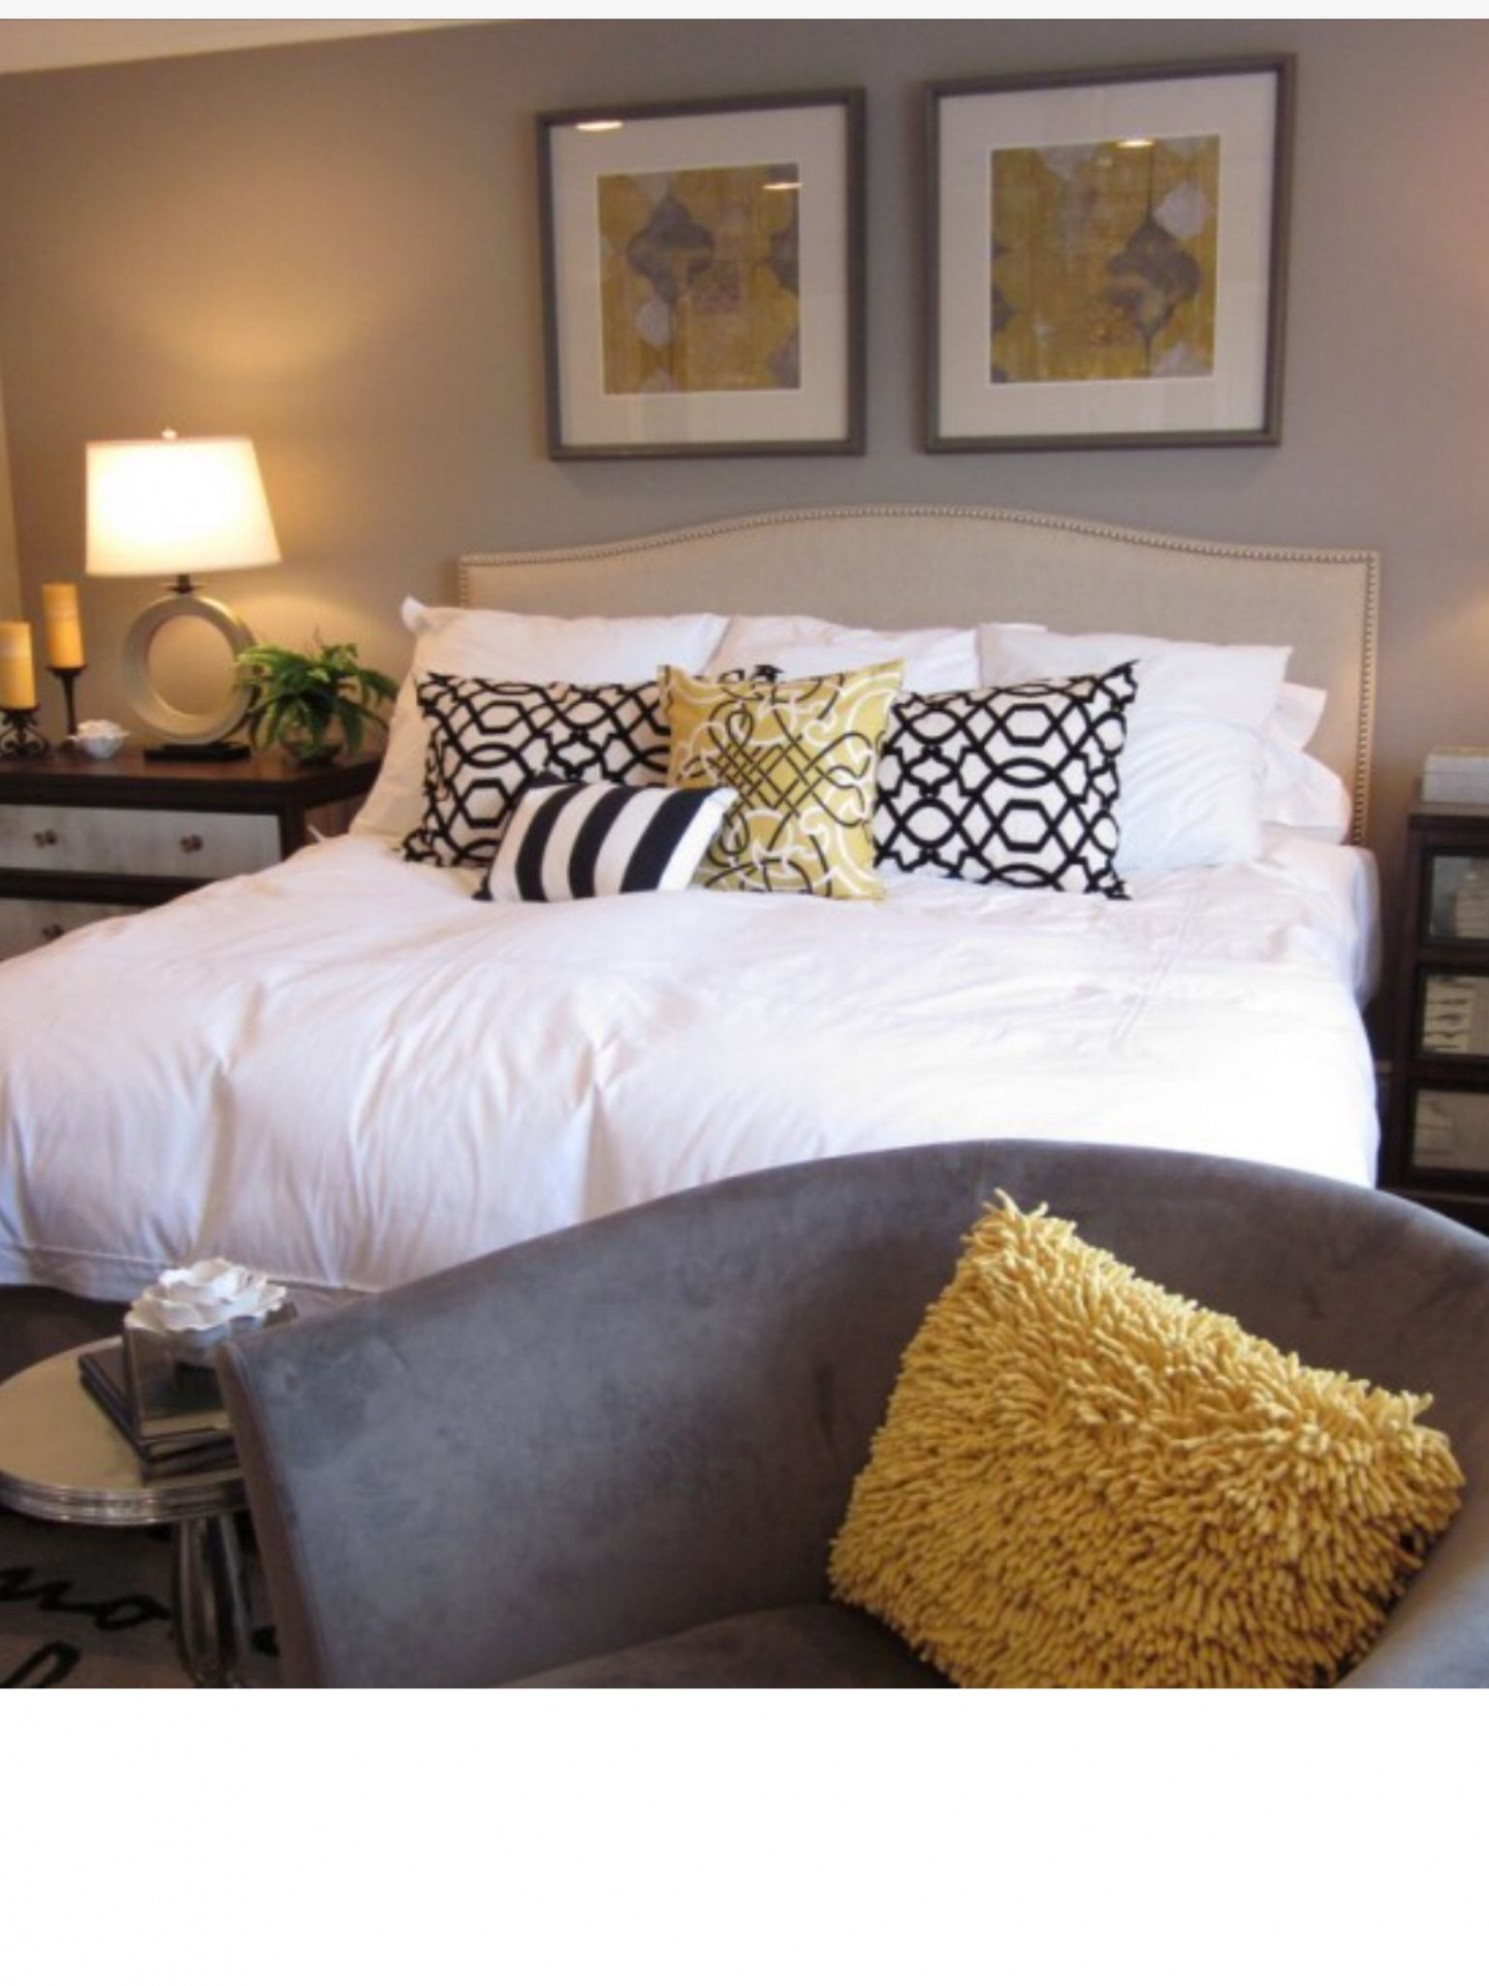 Bedroom colour scheme, black, white, mustard and beige  Bedroom  - Bedroom Ideas Mustard